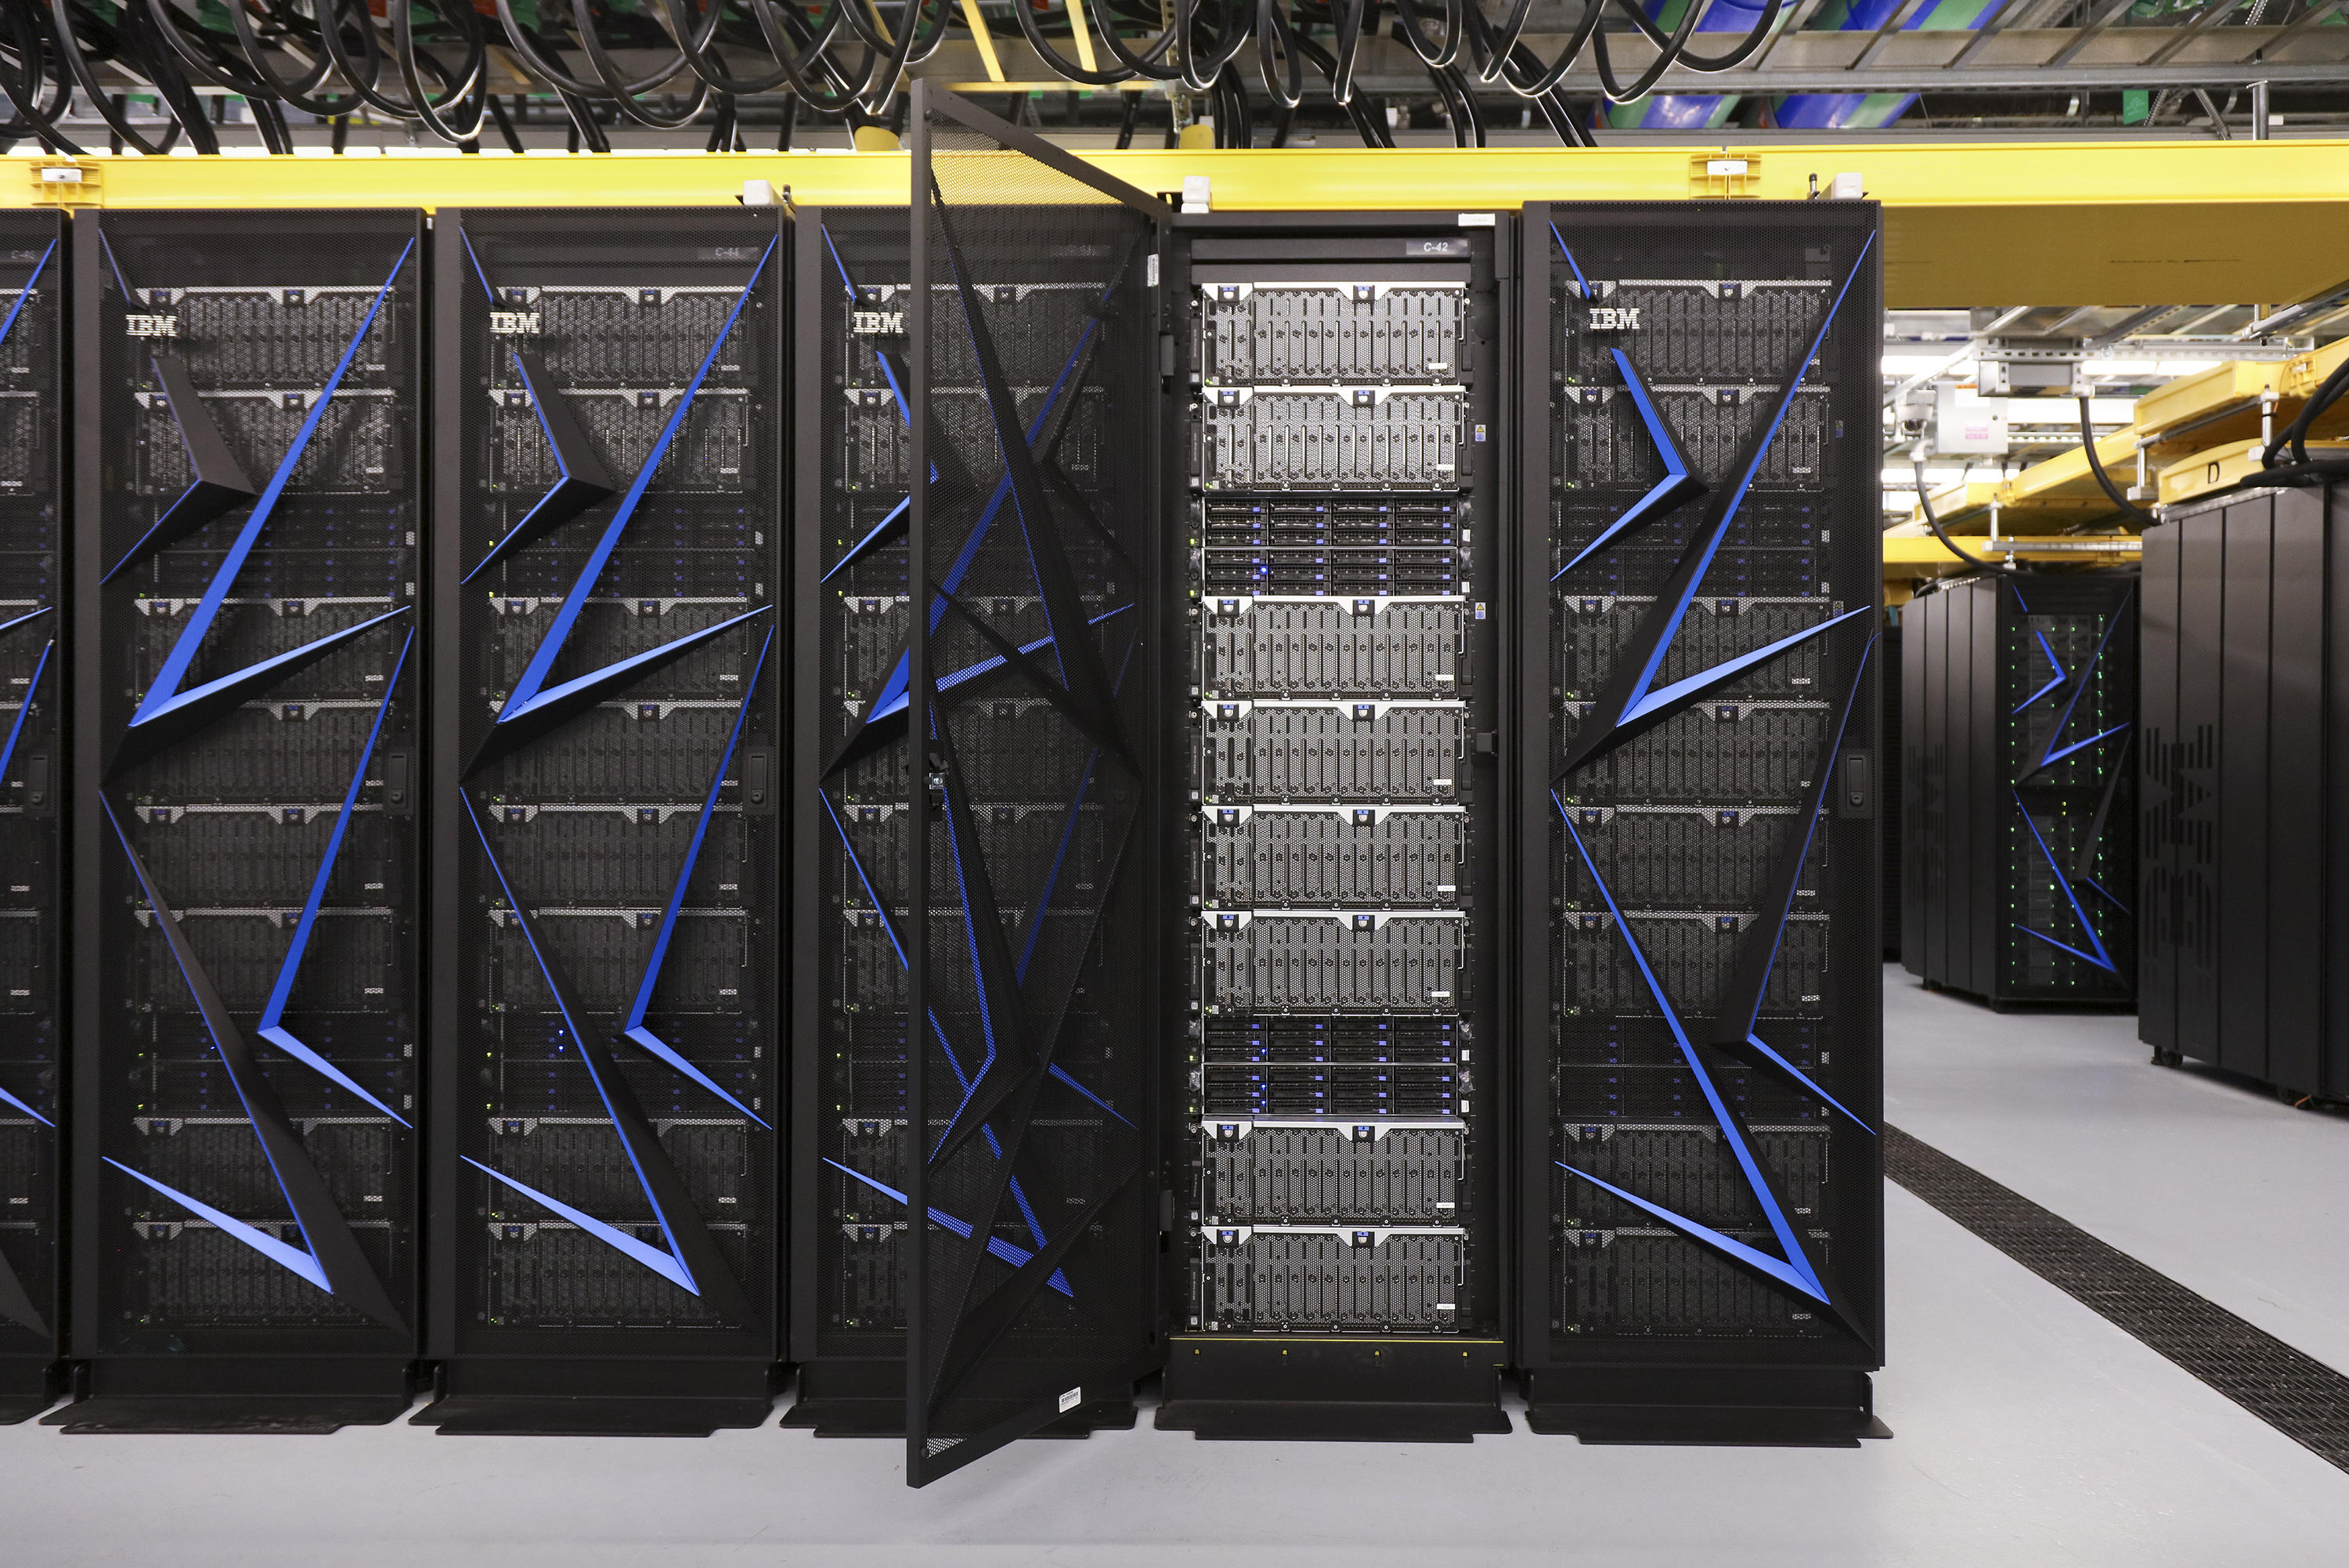 Some of the racks of computer nodes that make up the Summit supercomputer built by IBM at Oak Ridge National Laboratory in Tennessee.